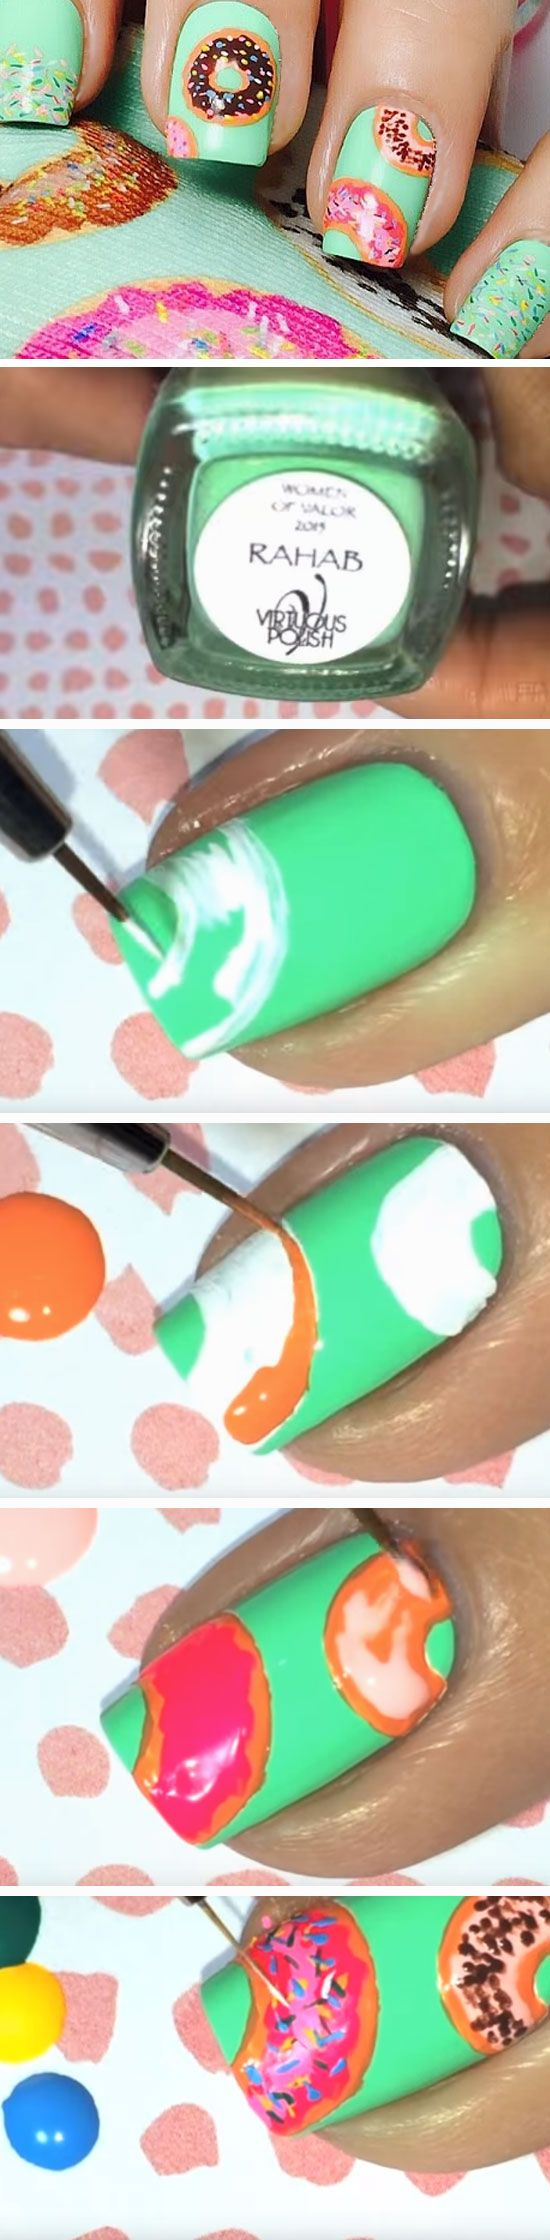 Donuts   Click Pic for 22 Easy Spring Nail Designs for Short Nails 2016   Awesome Nail Art Tutorials for Beginners